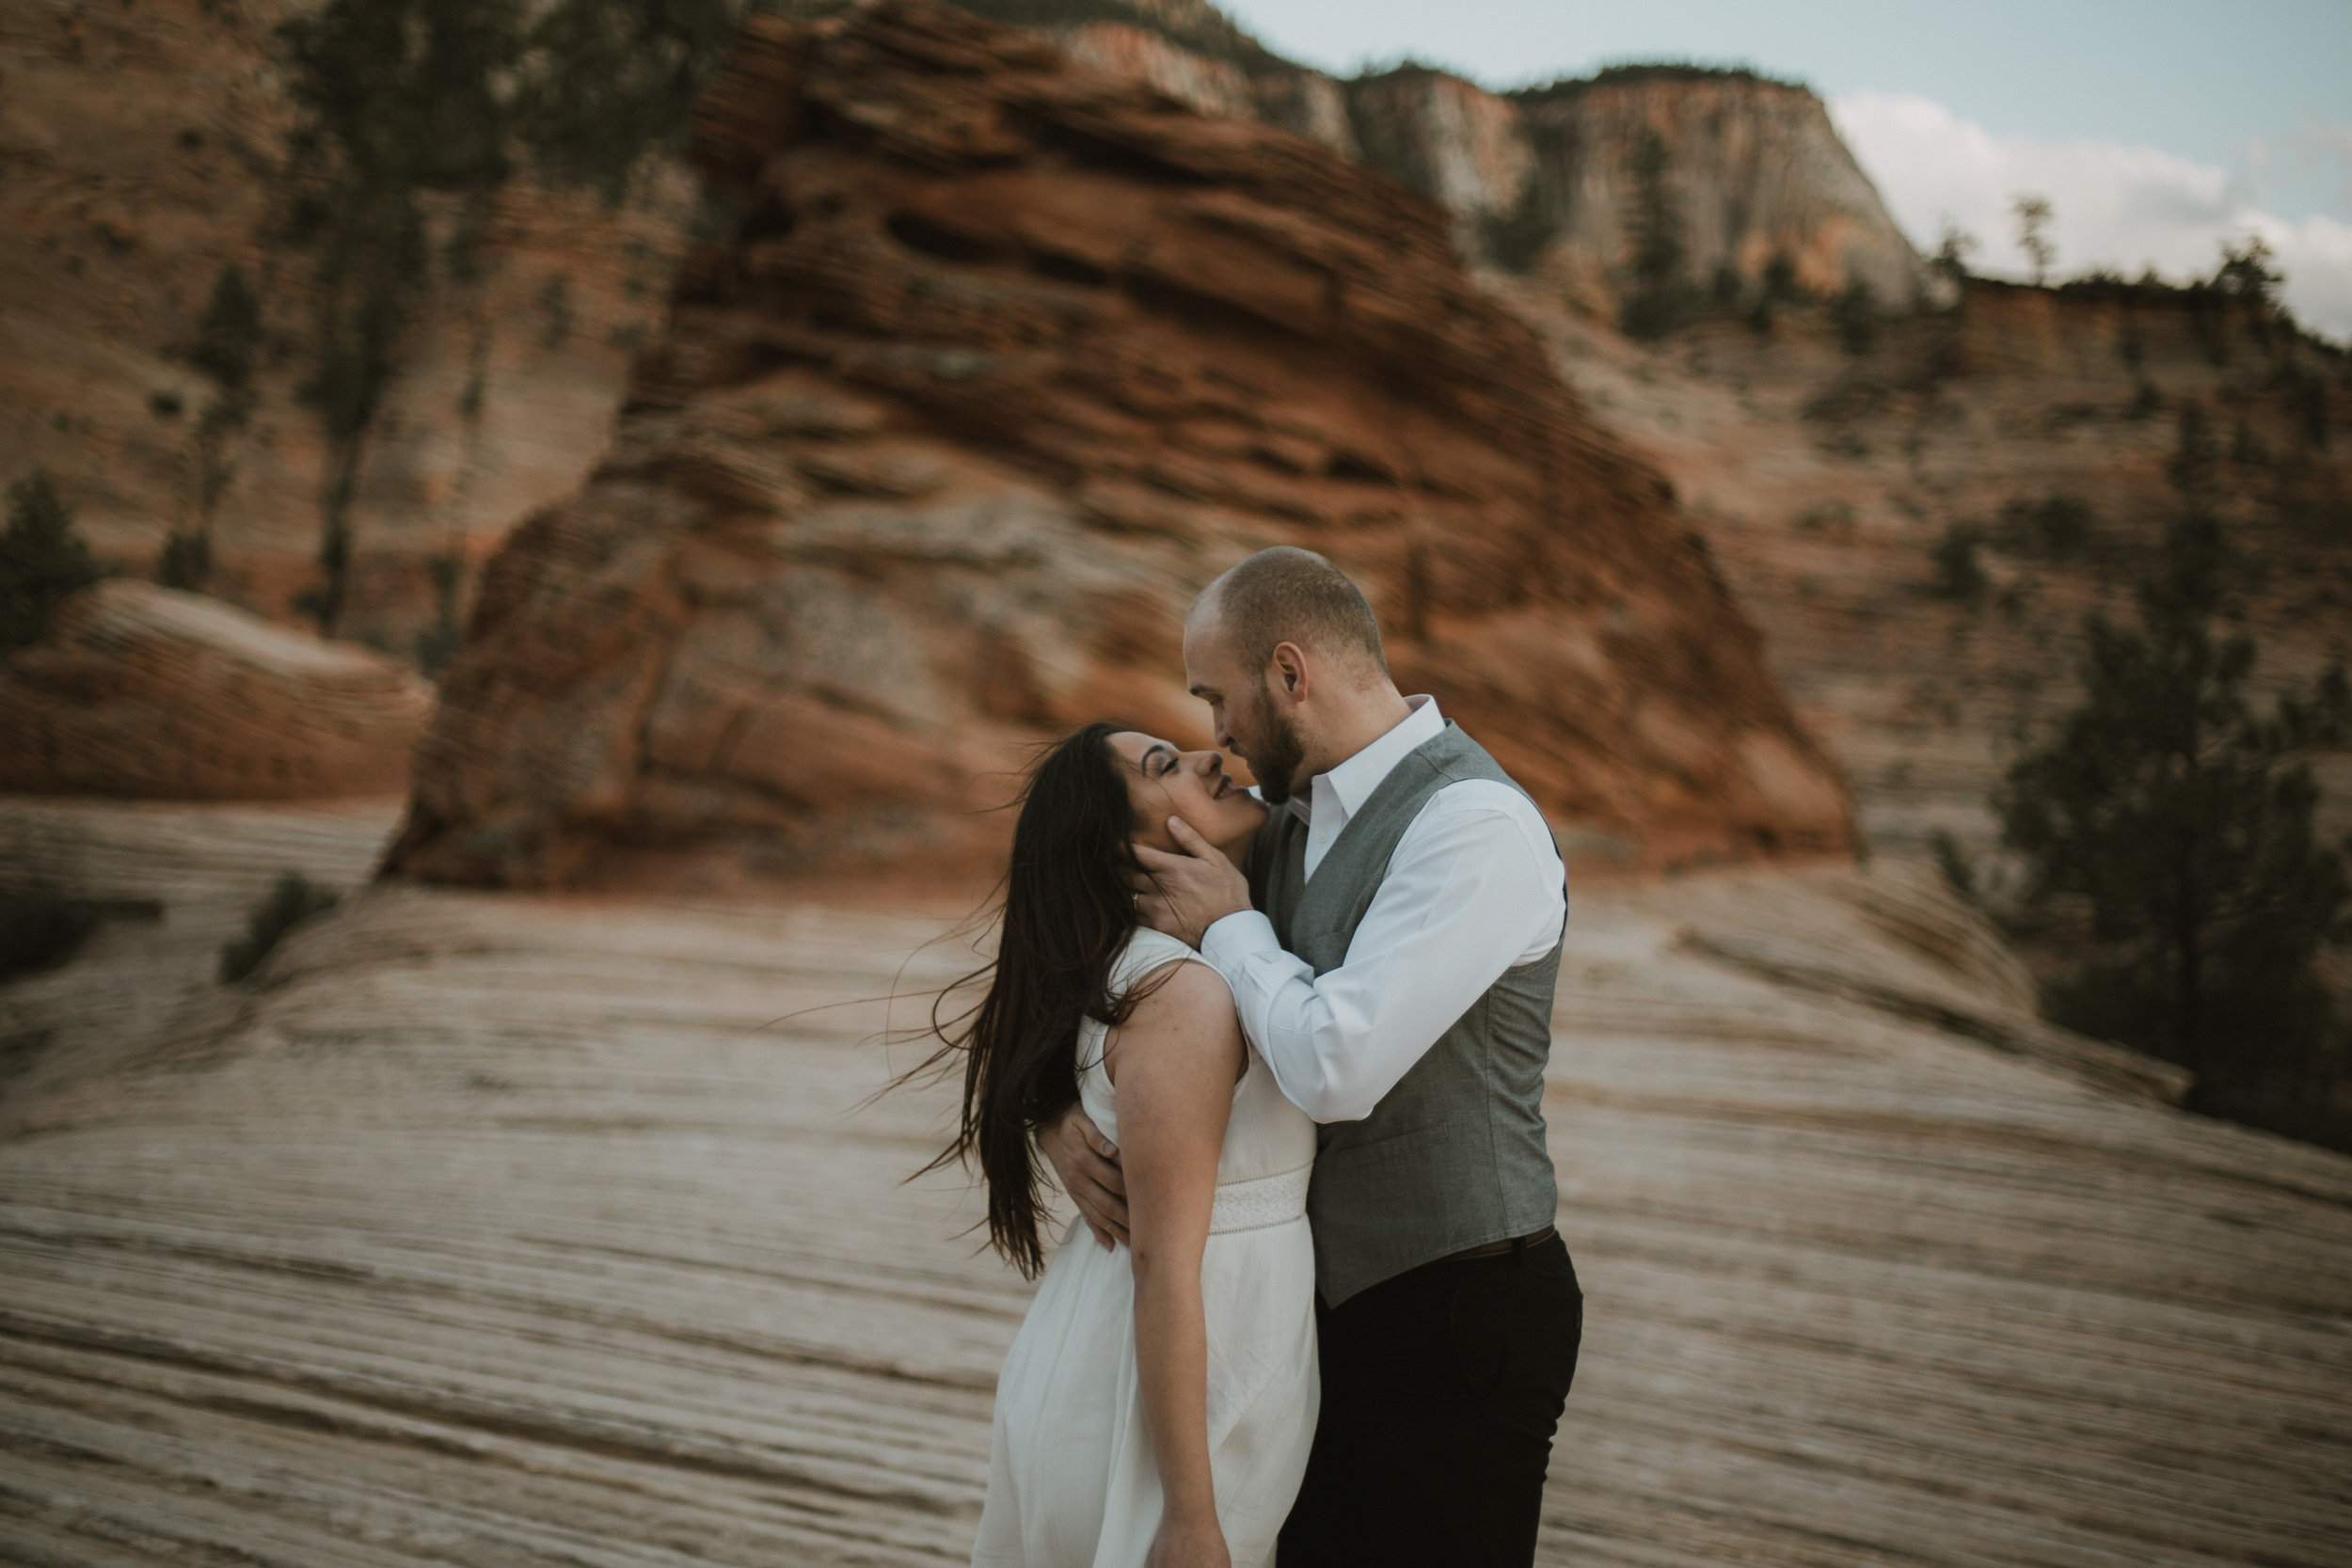 ALL INCLUSIVE ELOPEMENT OFFER